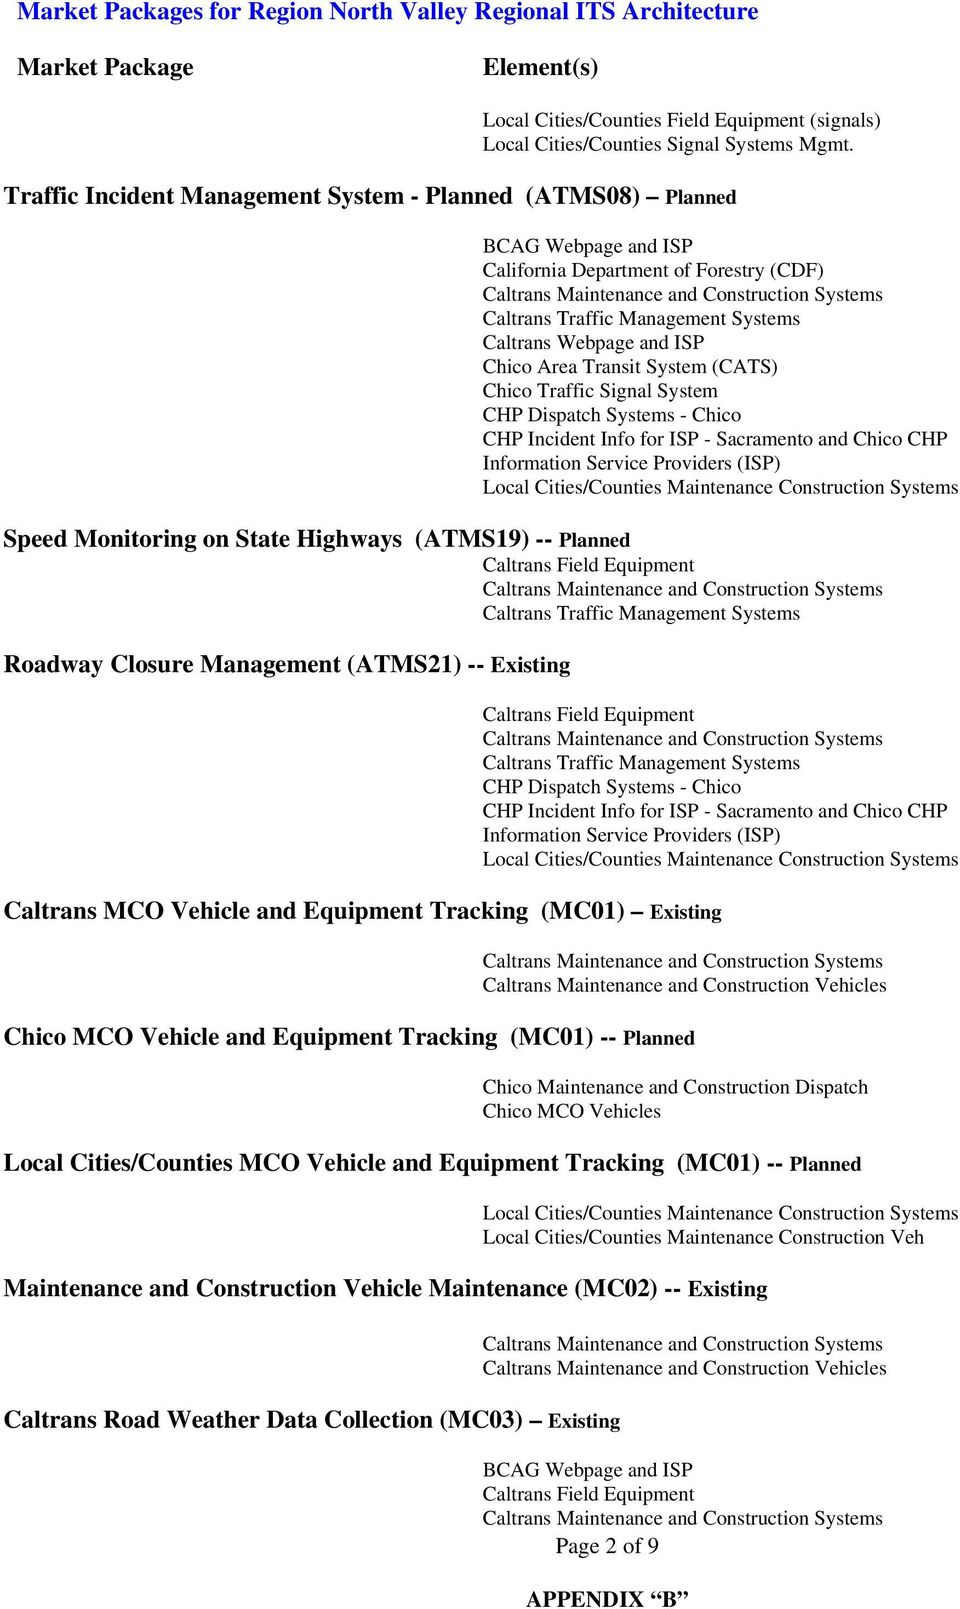 and Equipment Tracking (MC01) -- Planned Local Cities/Counties MCO Vehicle and Equipment Tracking (MC01) -- Planned Local Cities/Counties